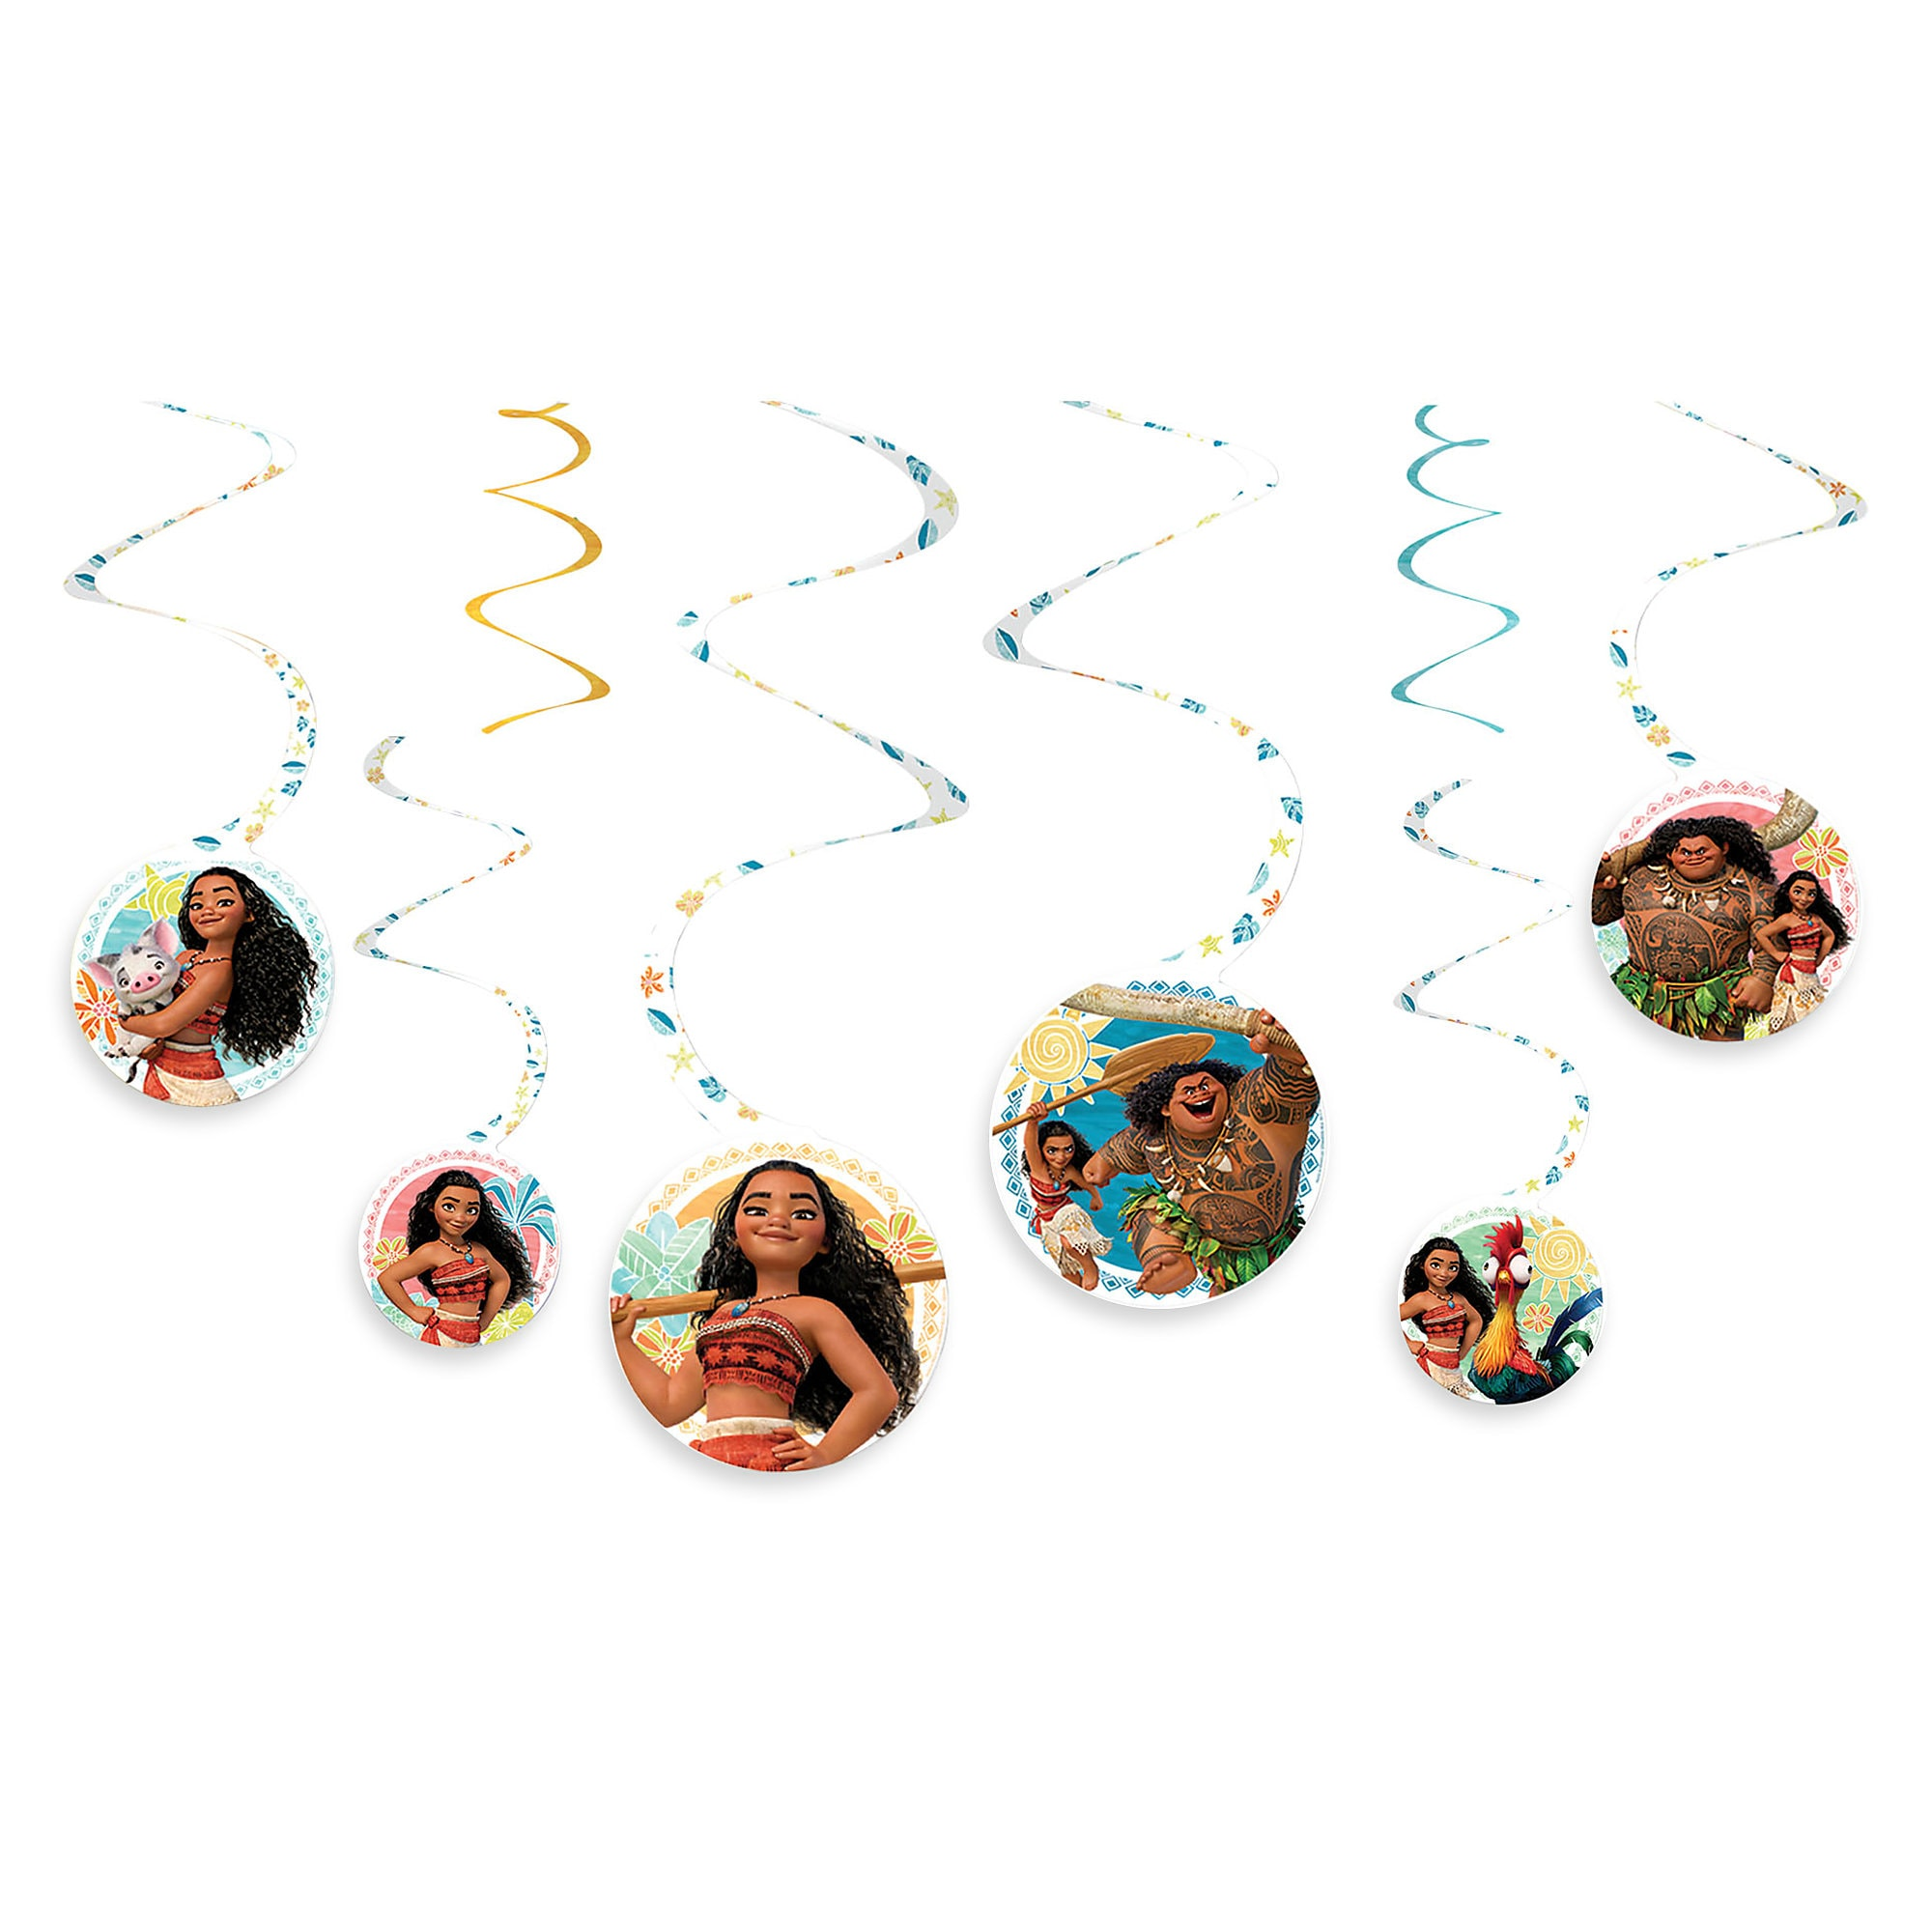 Moana Swirl Party Decorations - 2-Pack